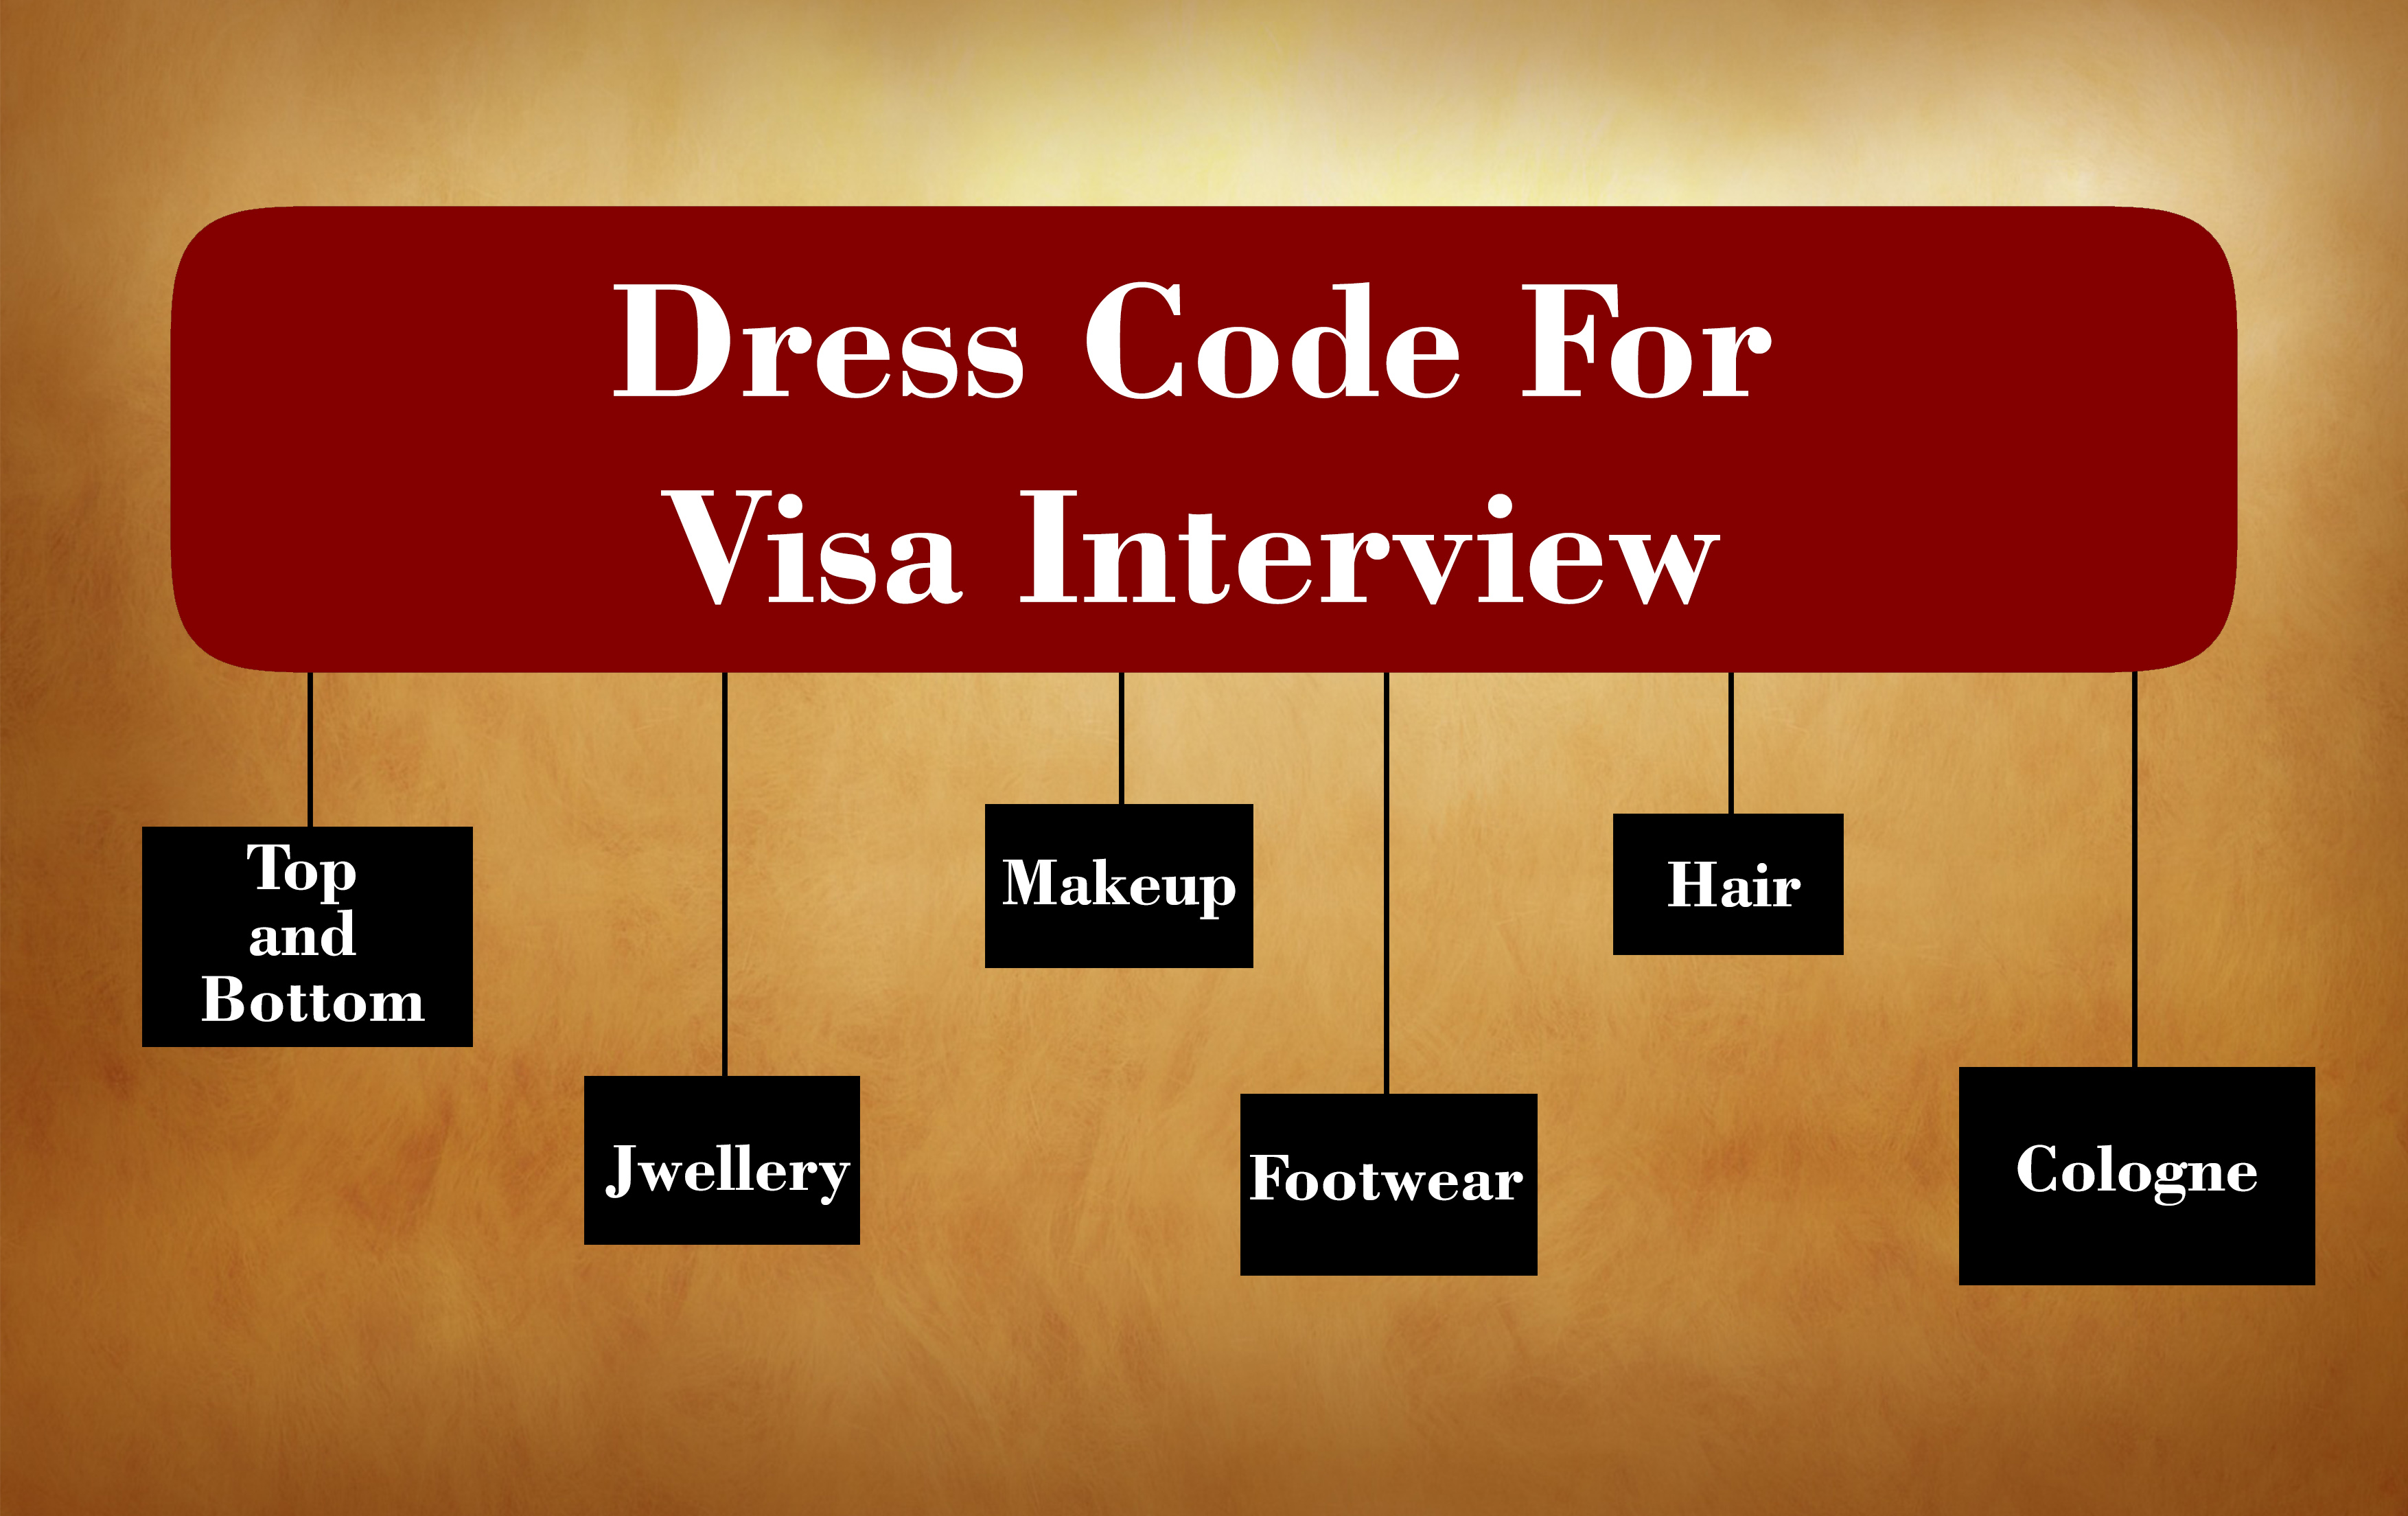 Dress code for visa interview - Shine Consultancy | Shine Consultancy